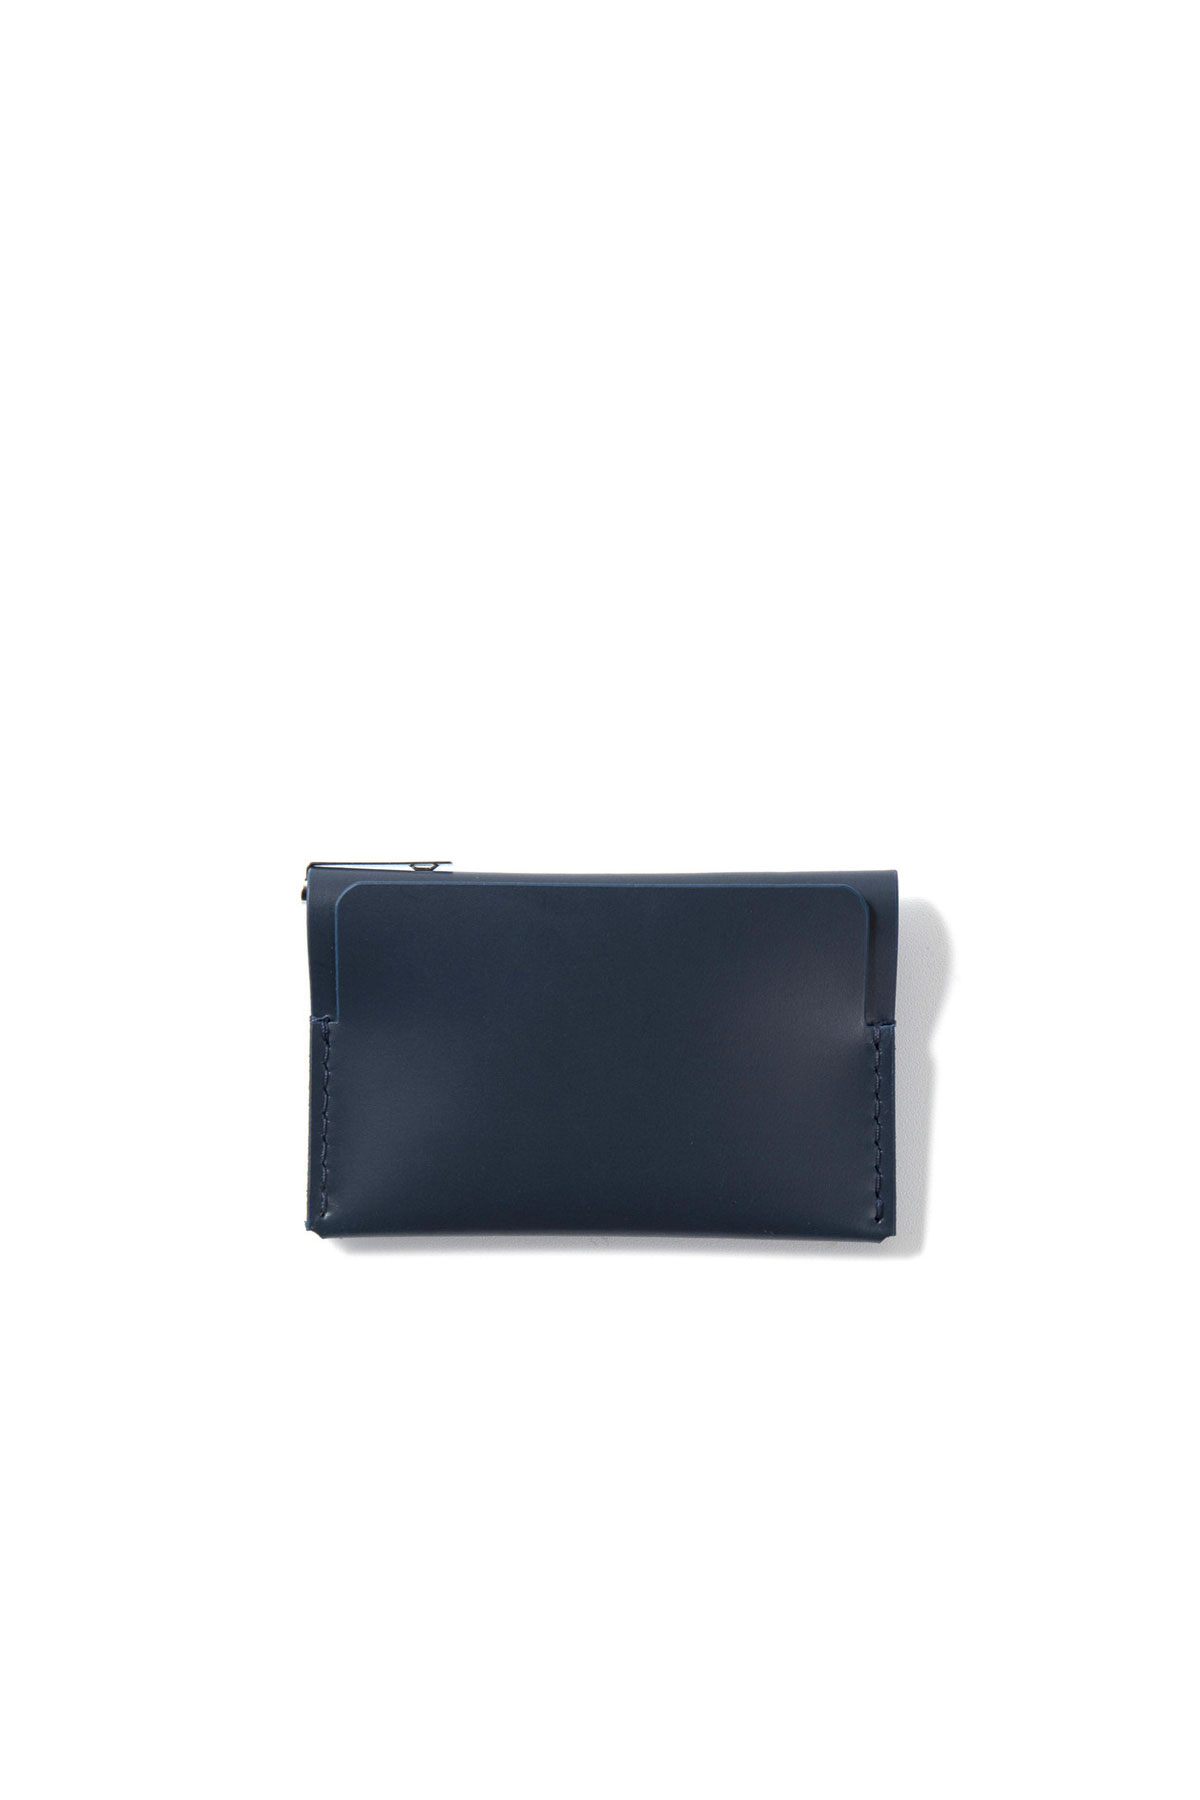 Blankof : WCL 03 T2 Backbend Card Case (Navy)